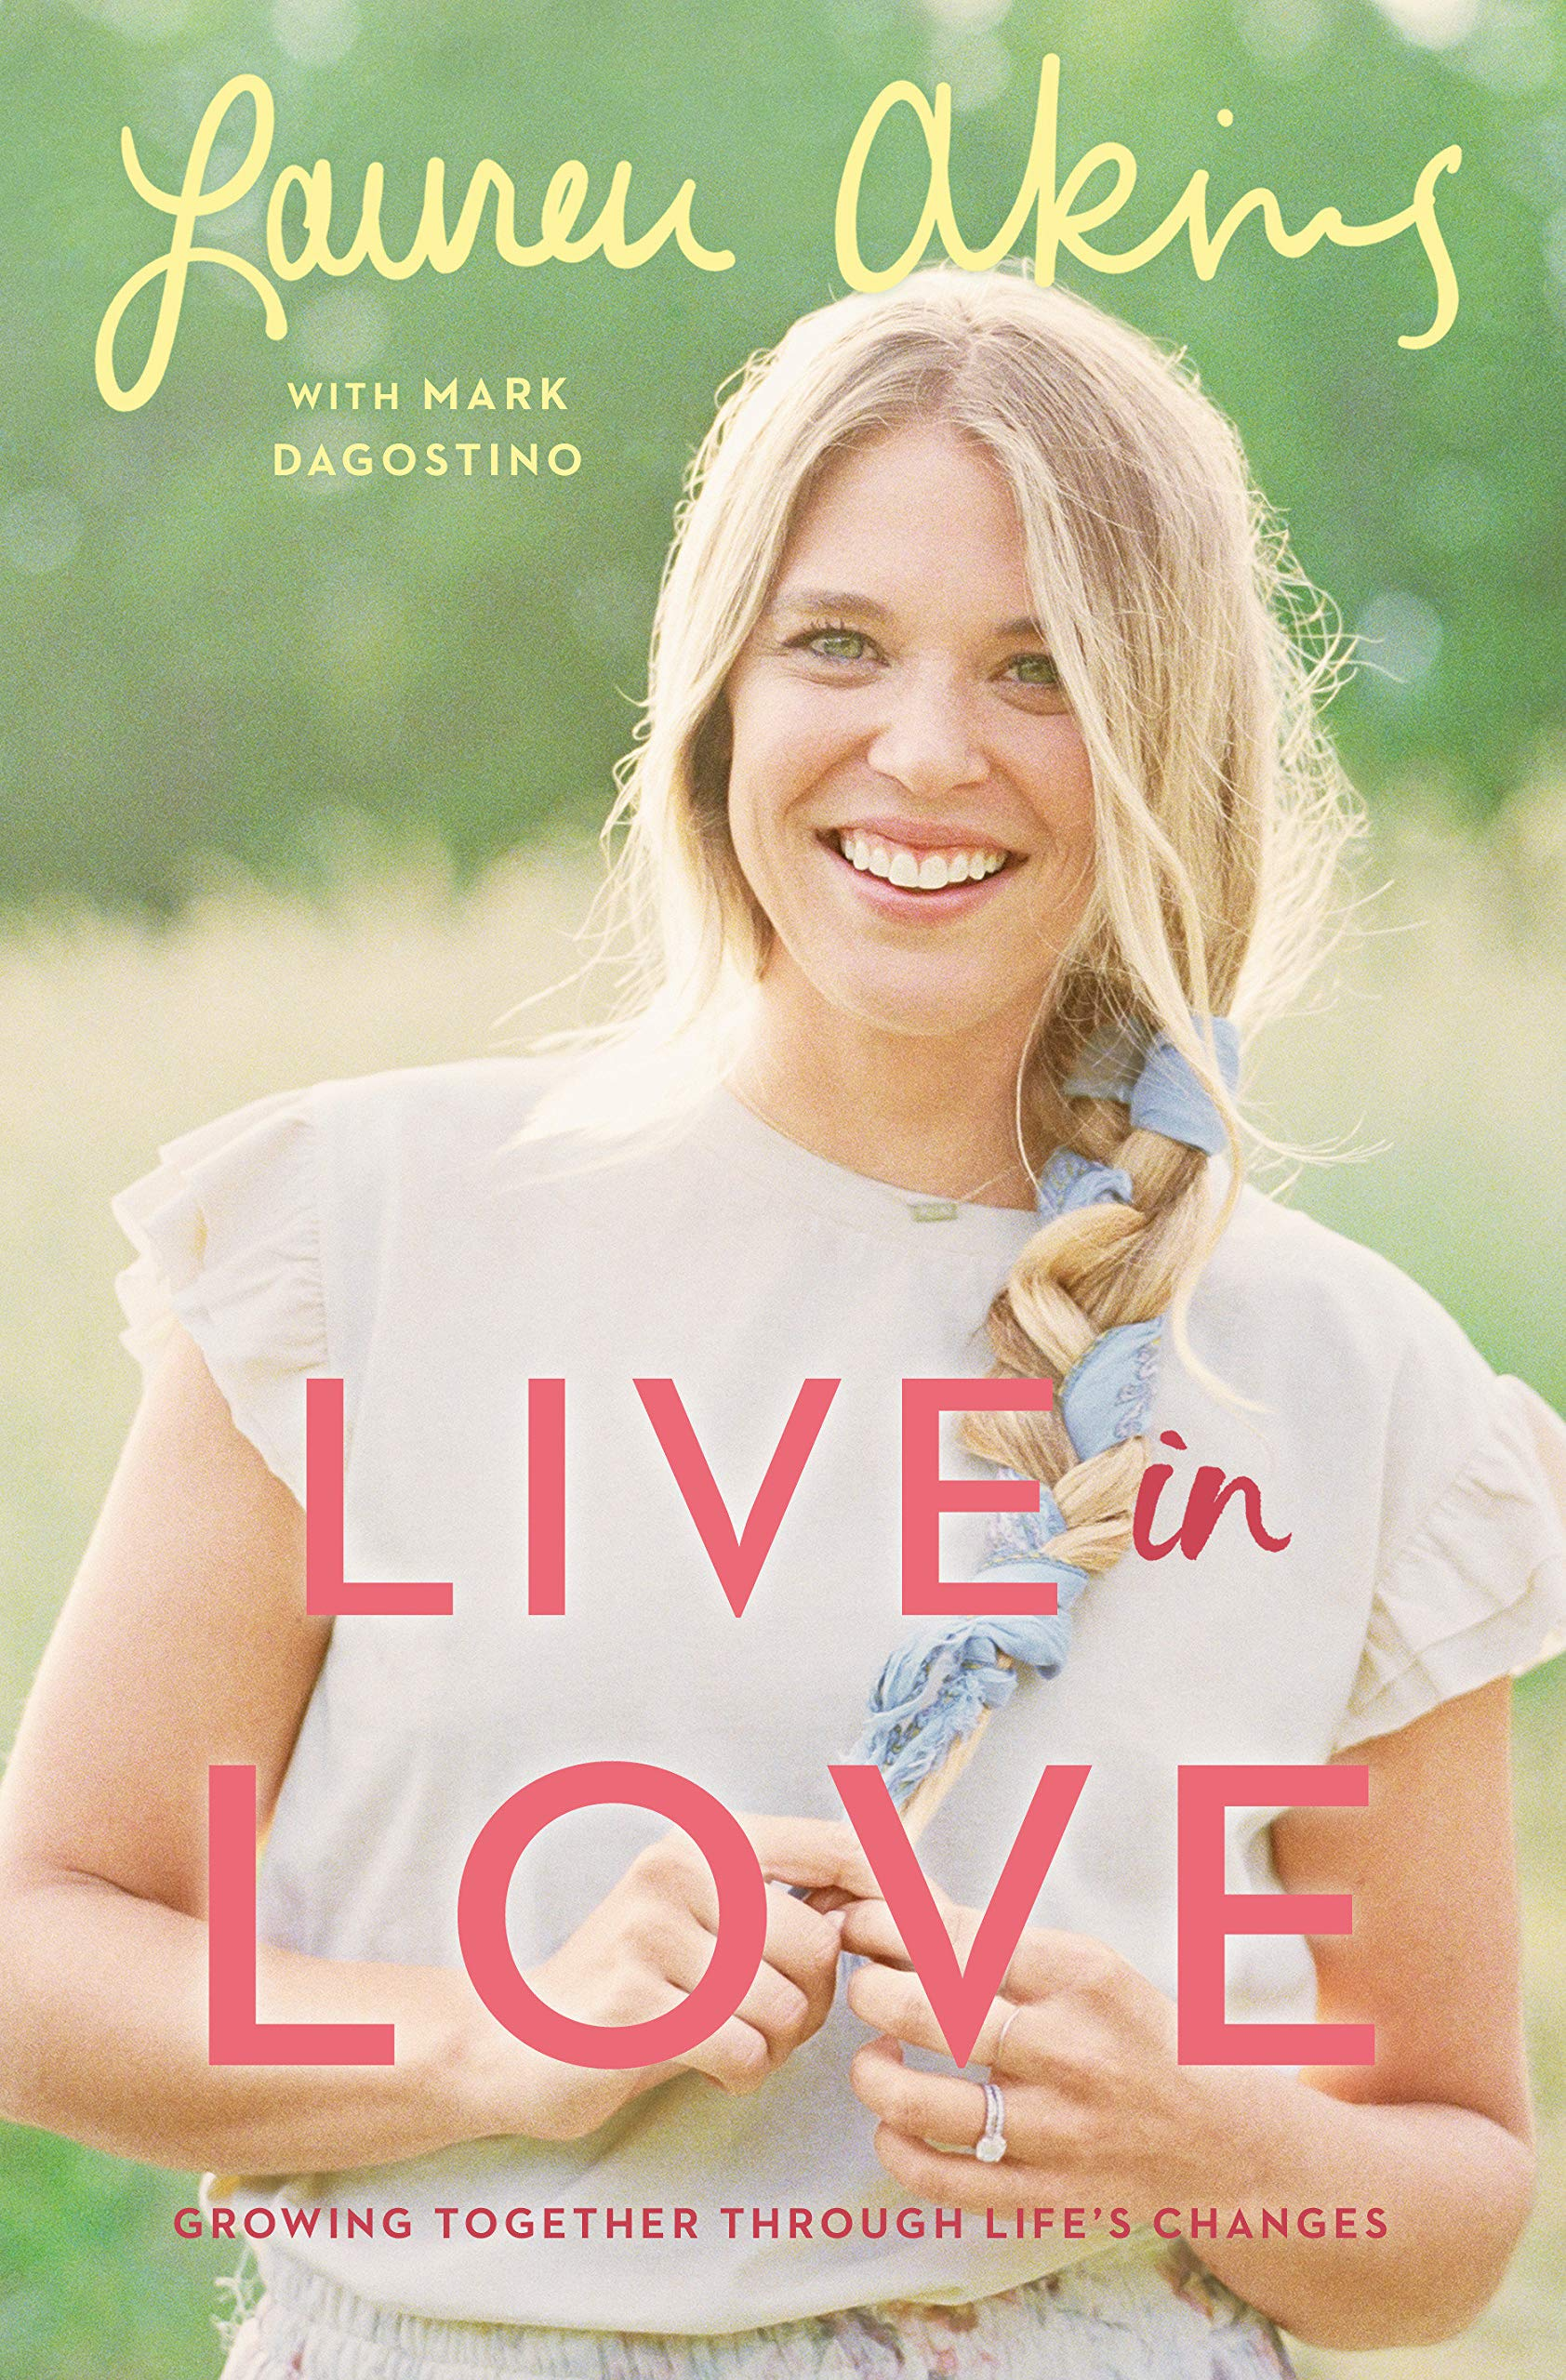 Live in Love: Growing Together Through Life's Changes: Akins, Lauren, Dagostino, Mark: 9780593129043: Amazon.com: Books